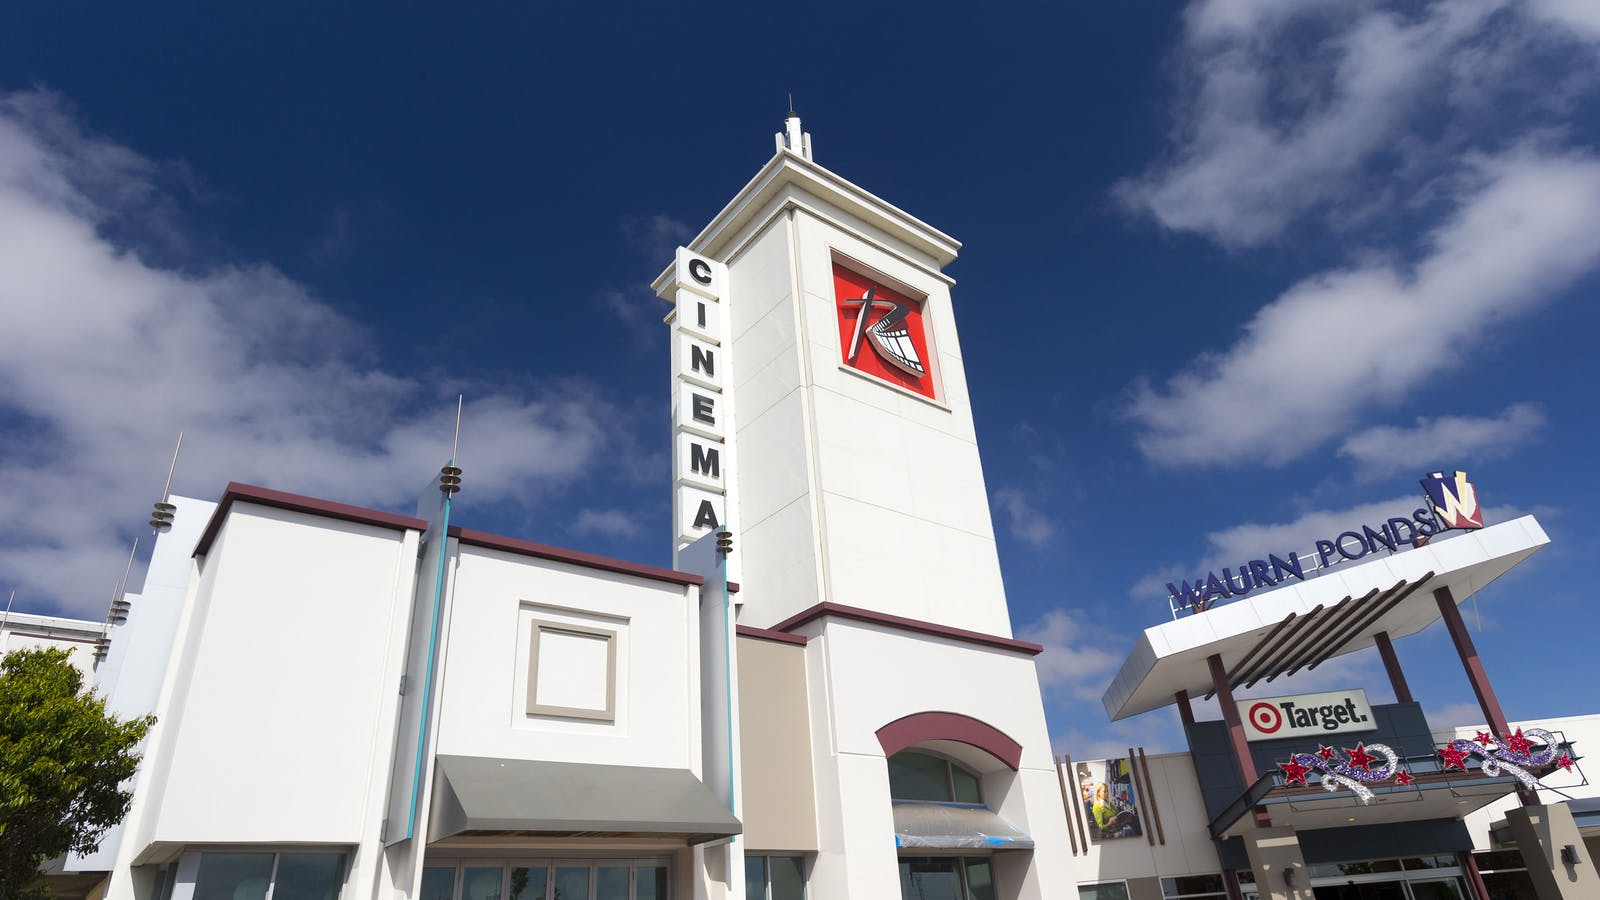 Reading Cinema + Target Entry